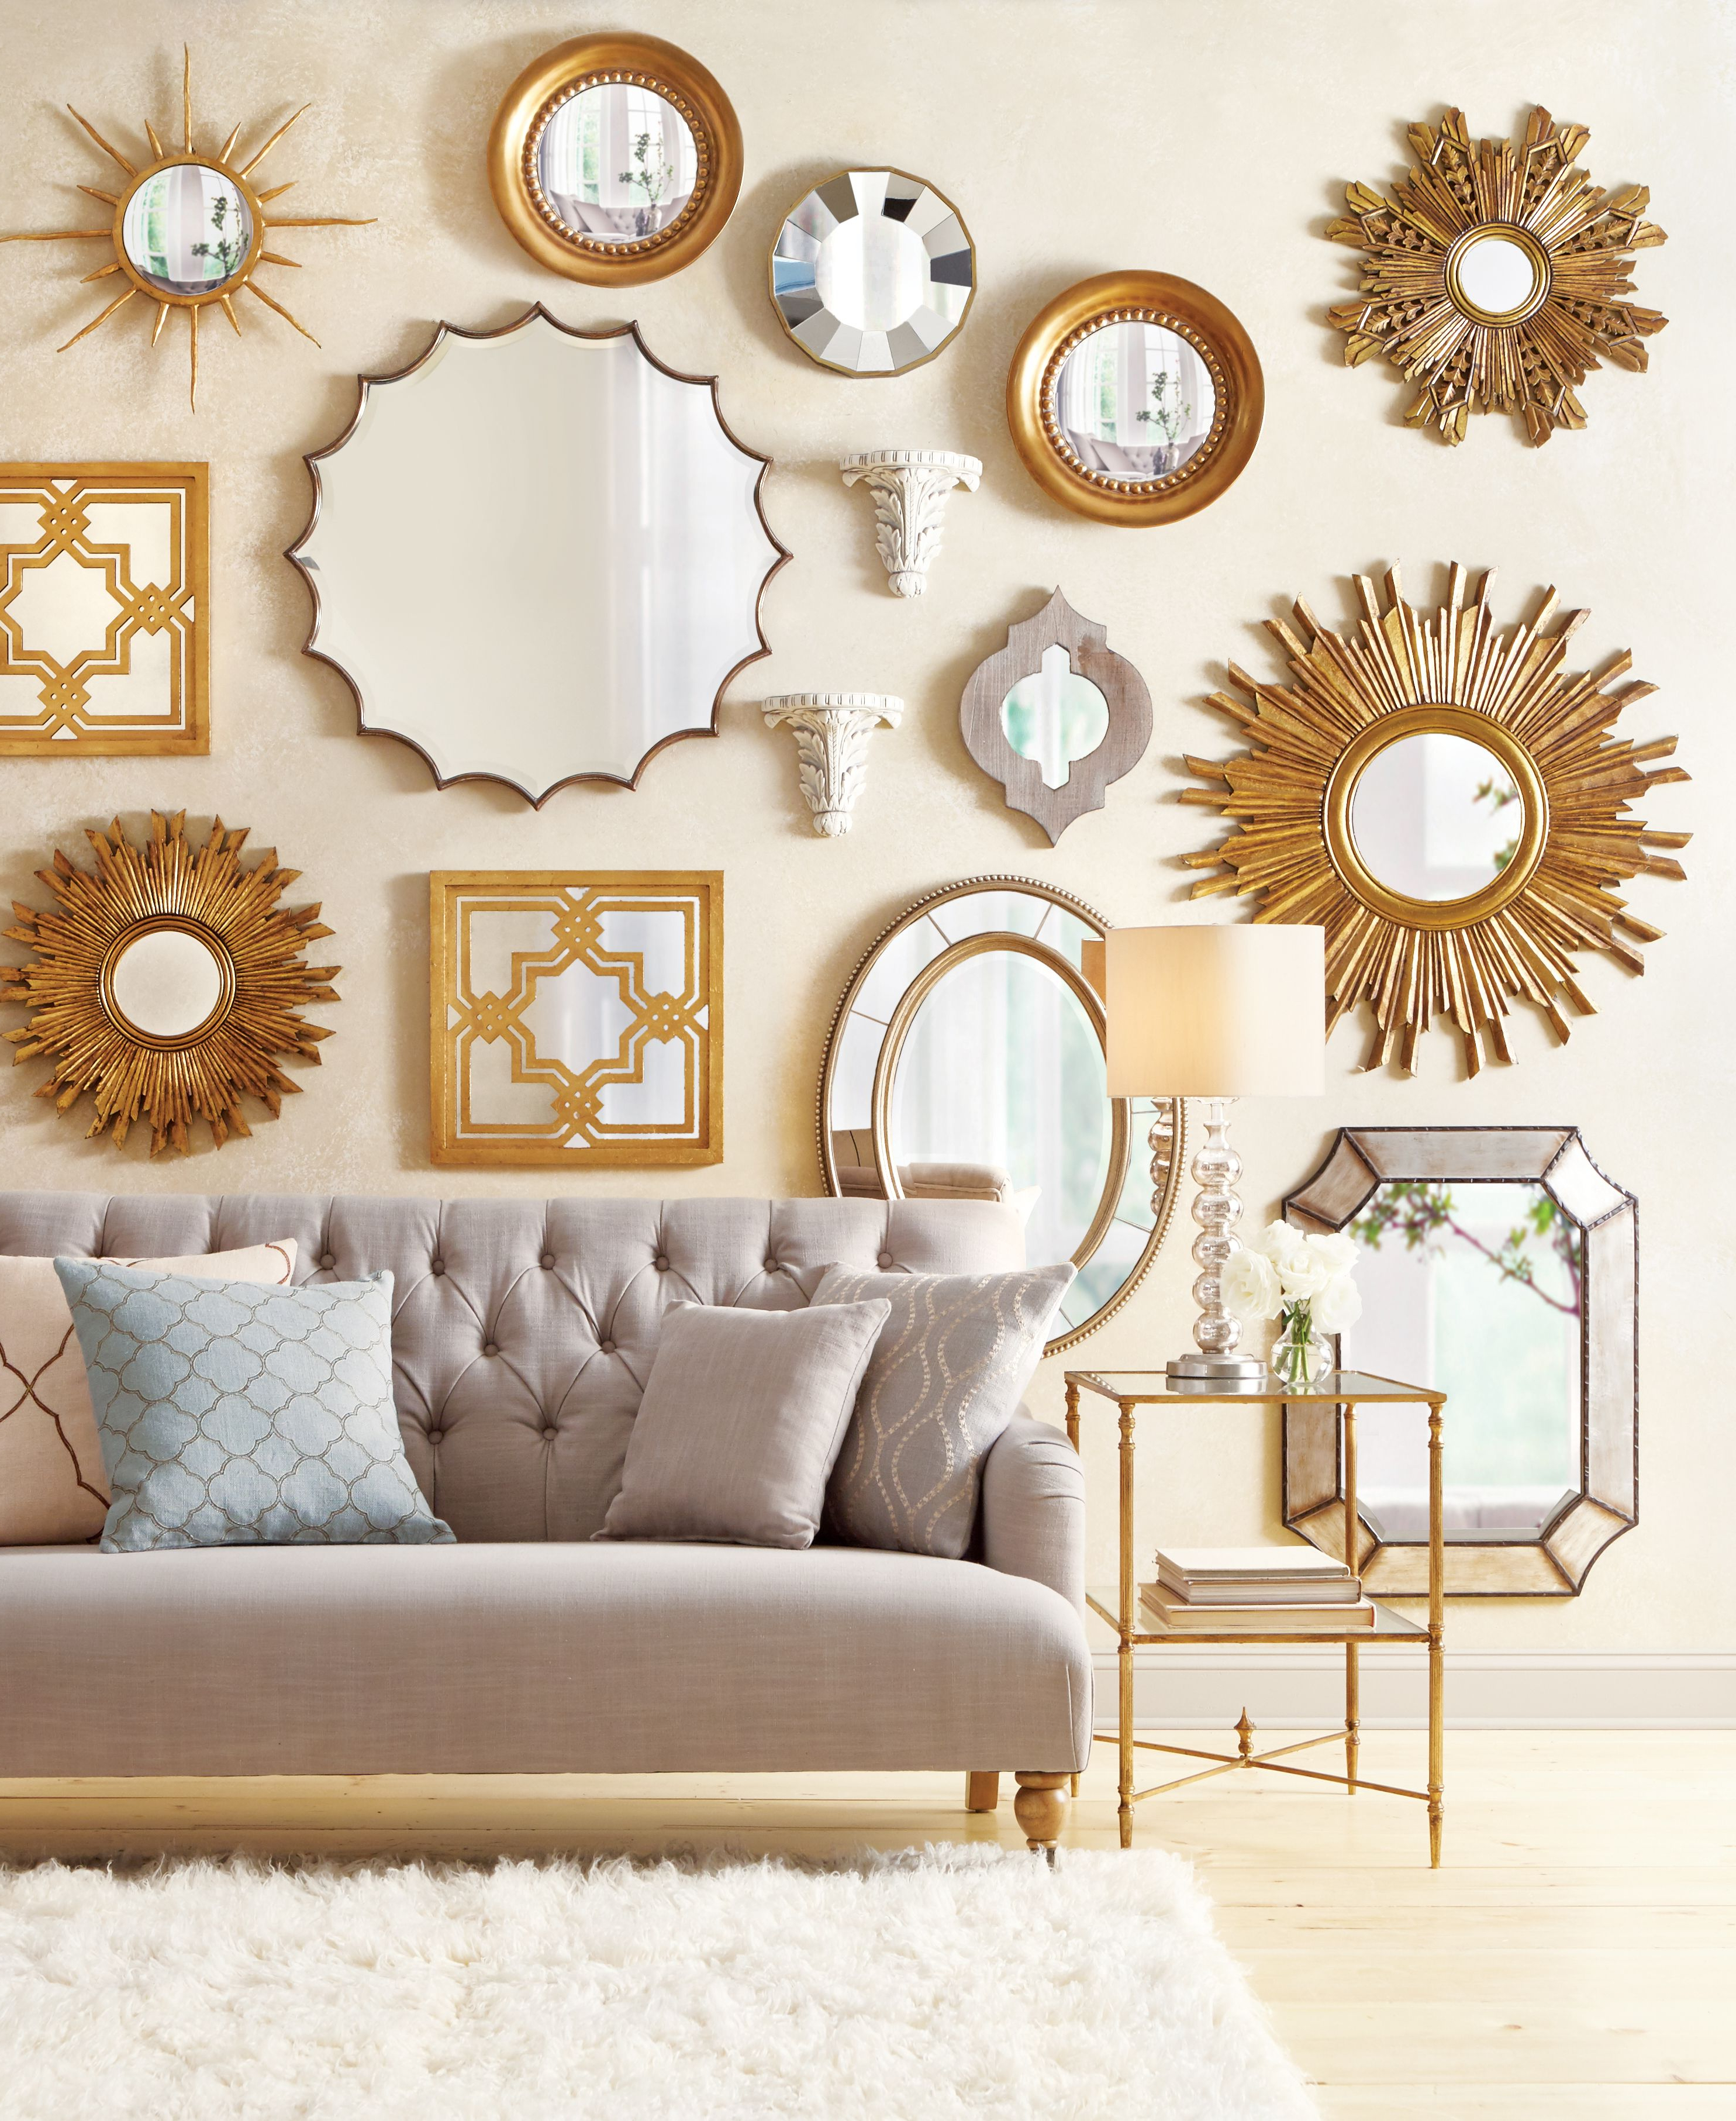 2020 2018 Horoscope: We Know What Your Zodiac Sign Will Love Next Year For Bem Decorative Wall Mirrors (View 16 of 20)